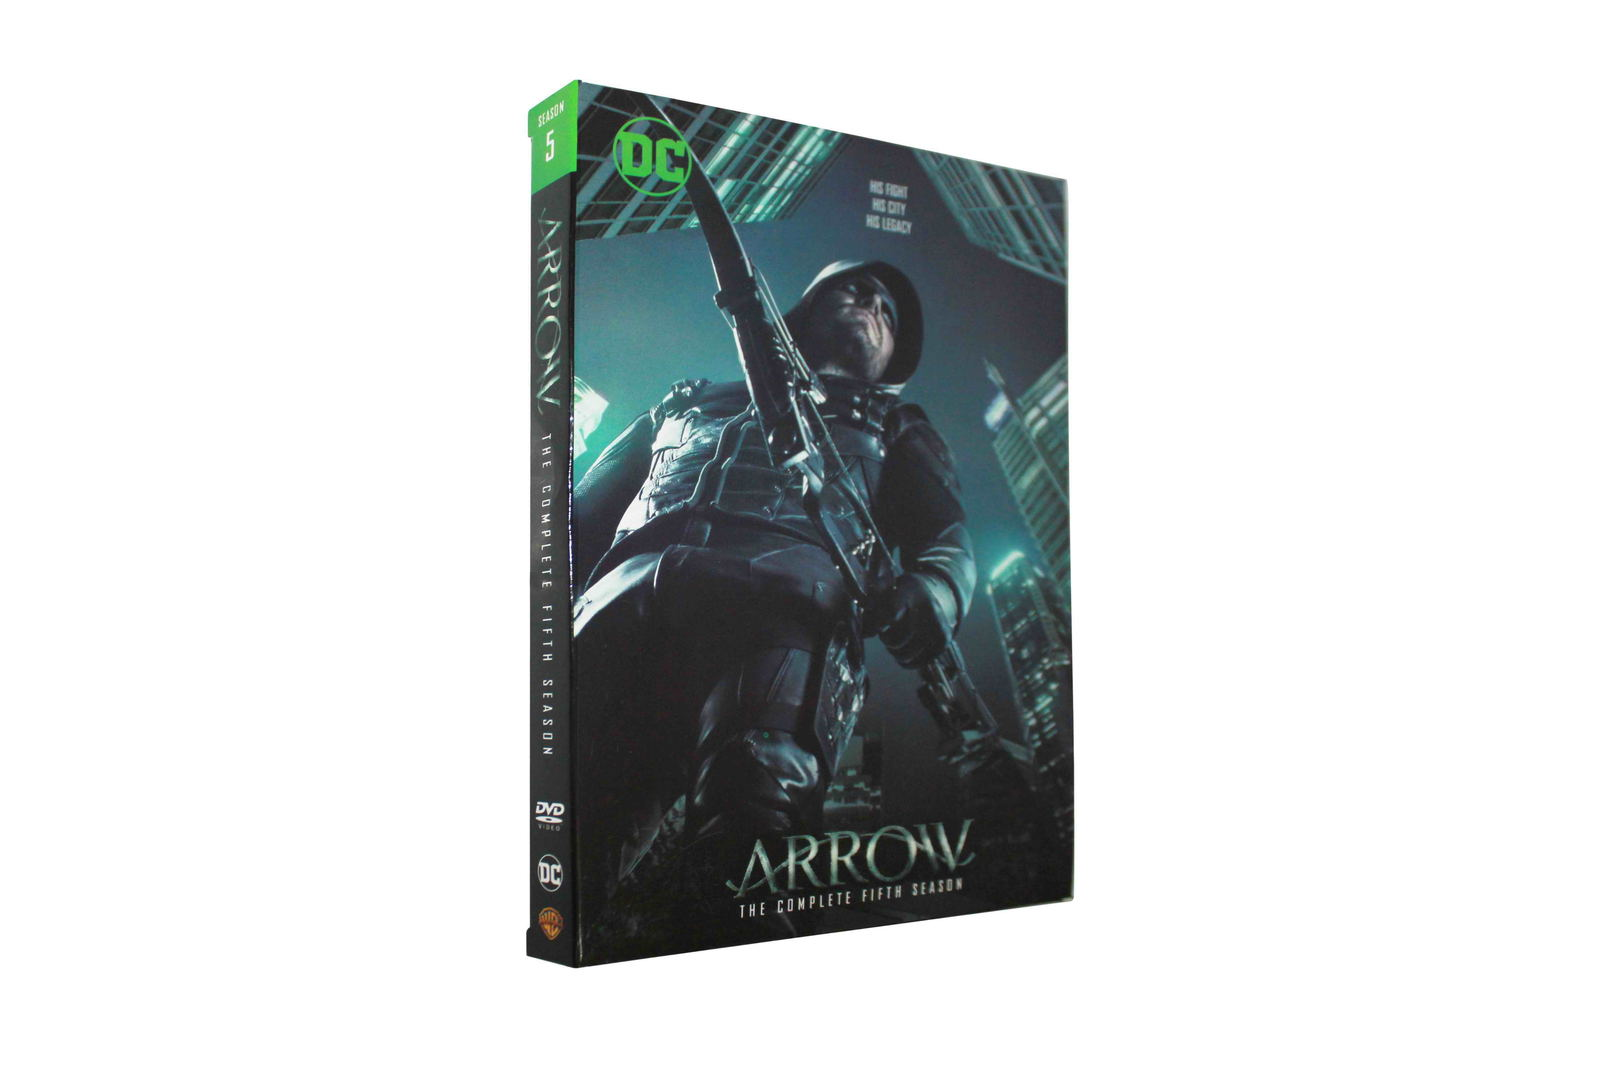 Arrow The Complete Fifth Season 5 DVD Box Set 5 Disc Free Shipping Brand New